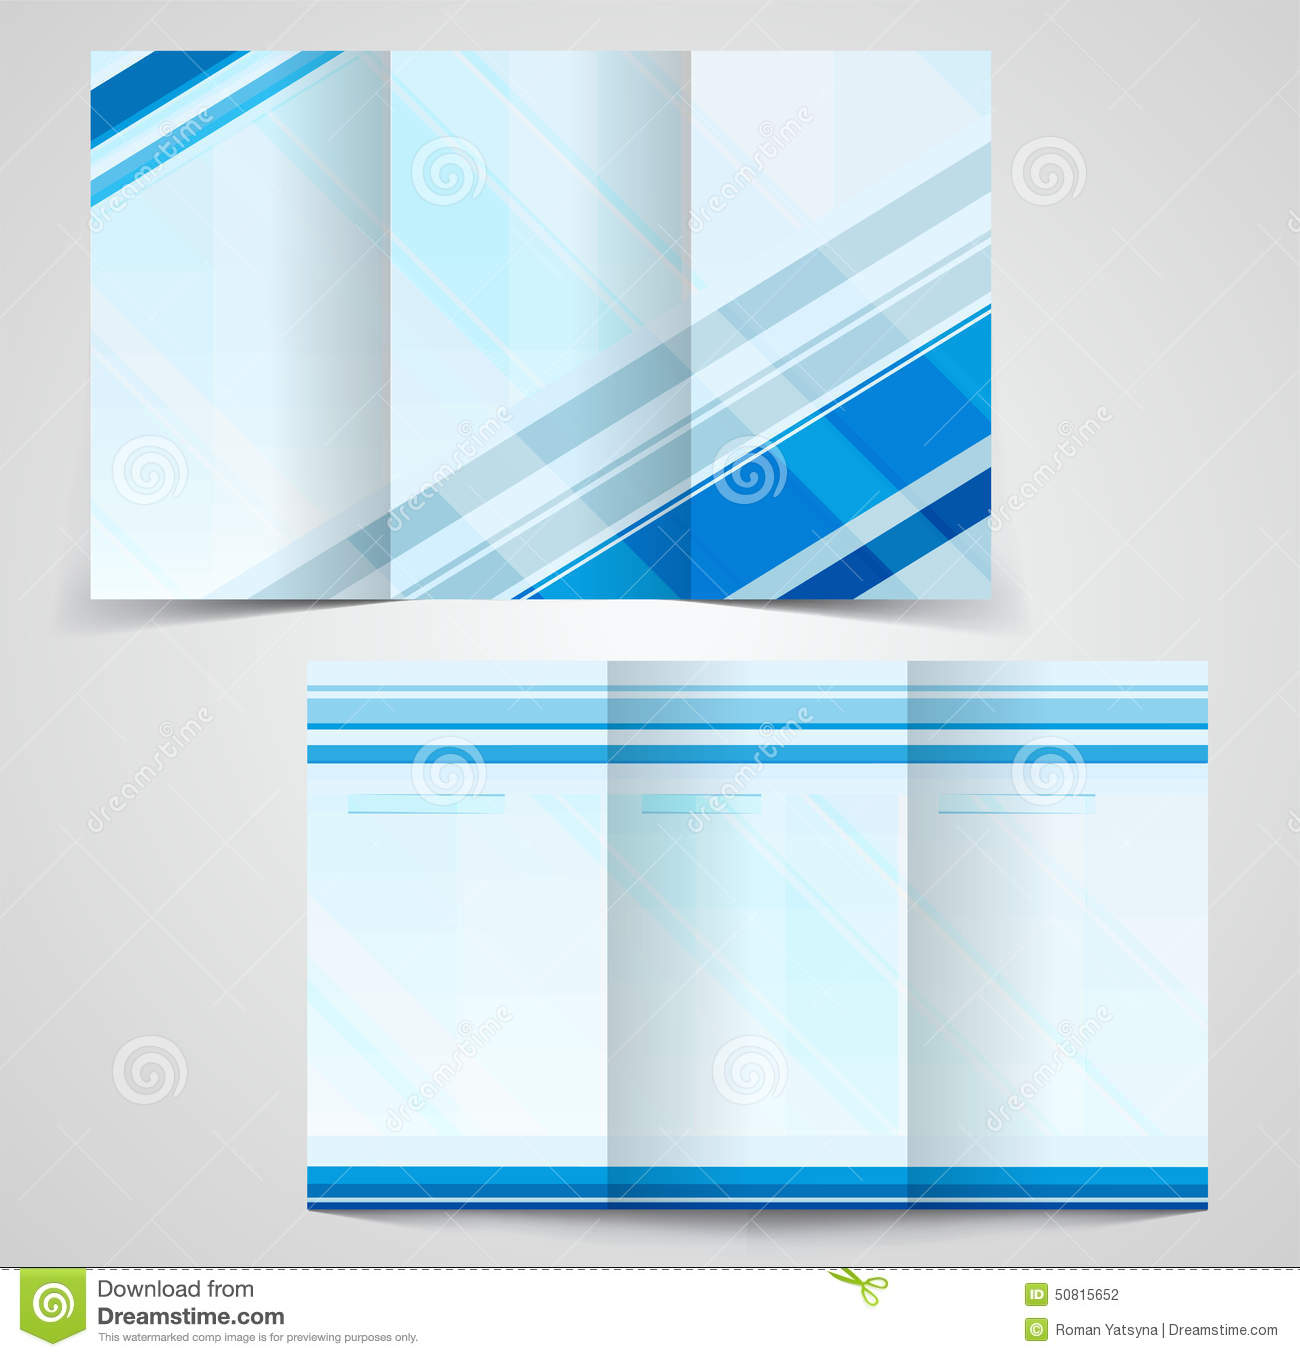 Tri fold business brochure template two sided template for Tri fold brochure design templates